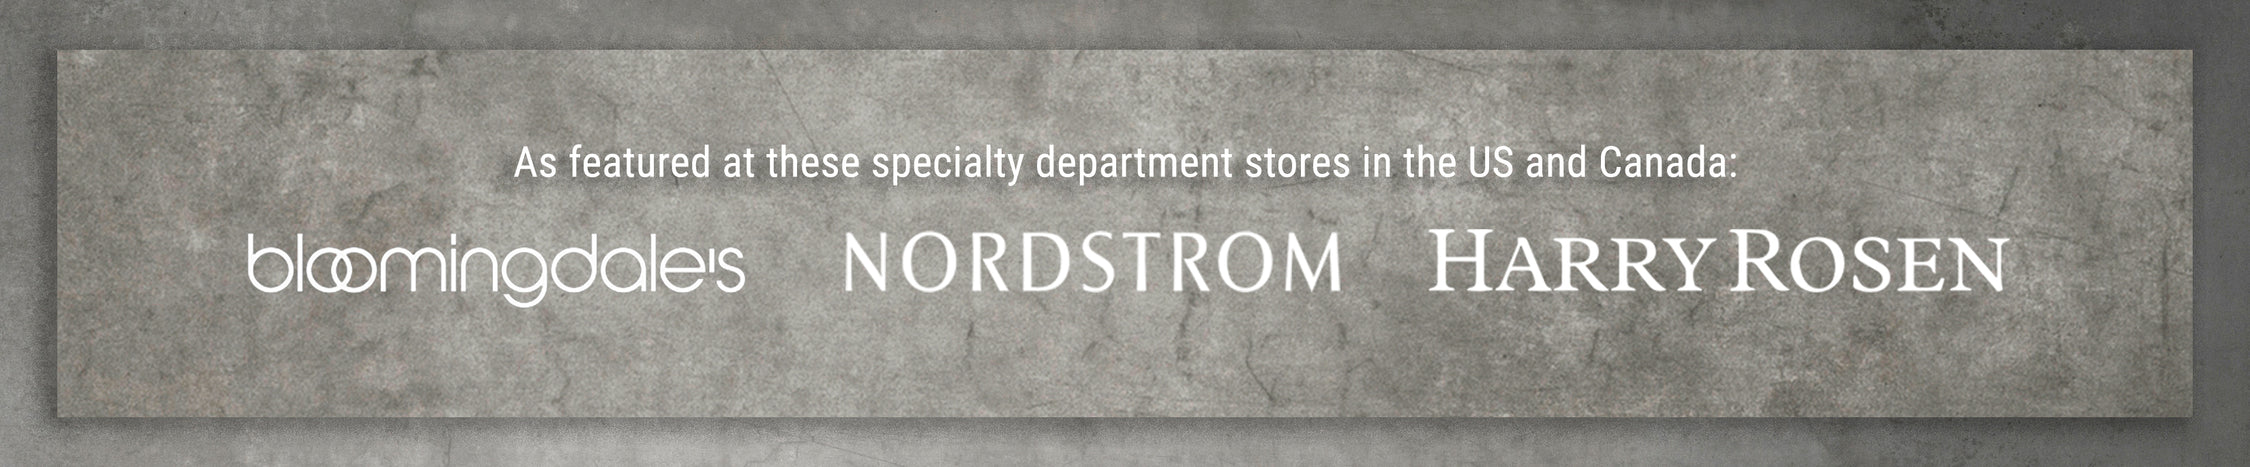 Holiday Sale Discount Deals [Cardinal of Canada] Nordstrom Bloomingdale [Harry Rosen]